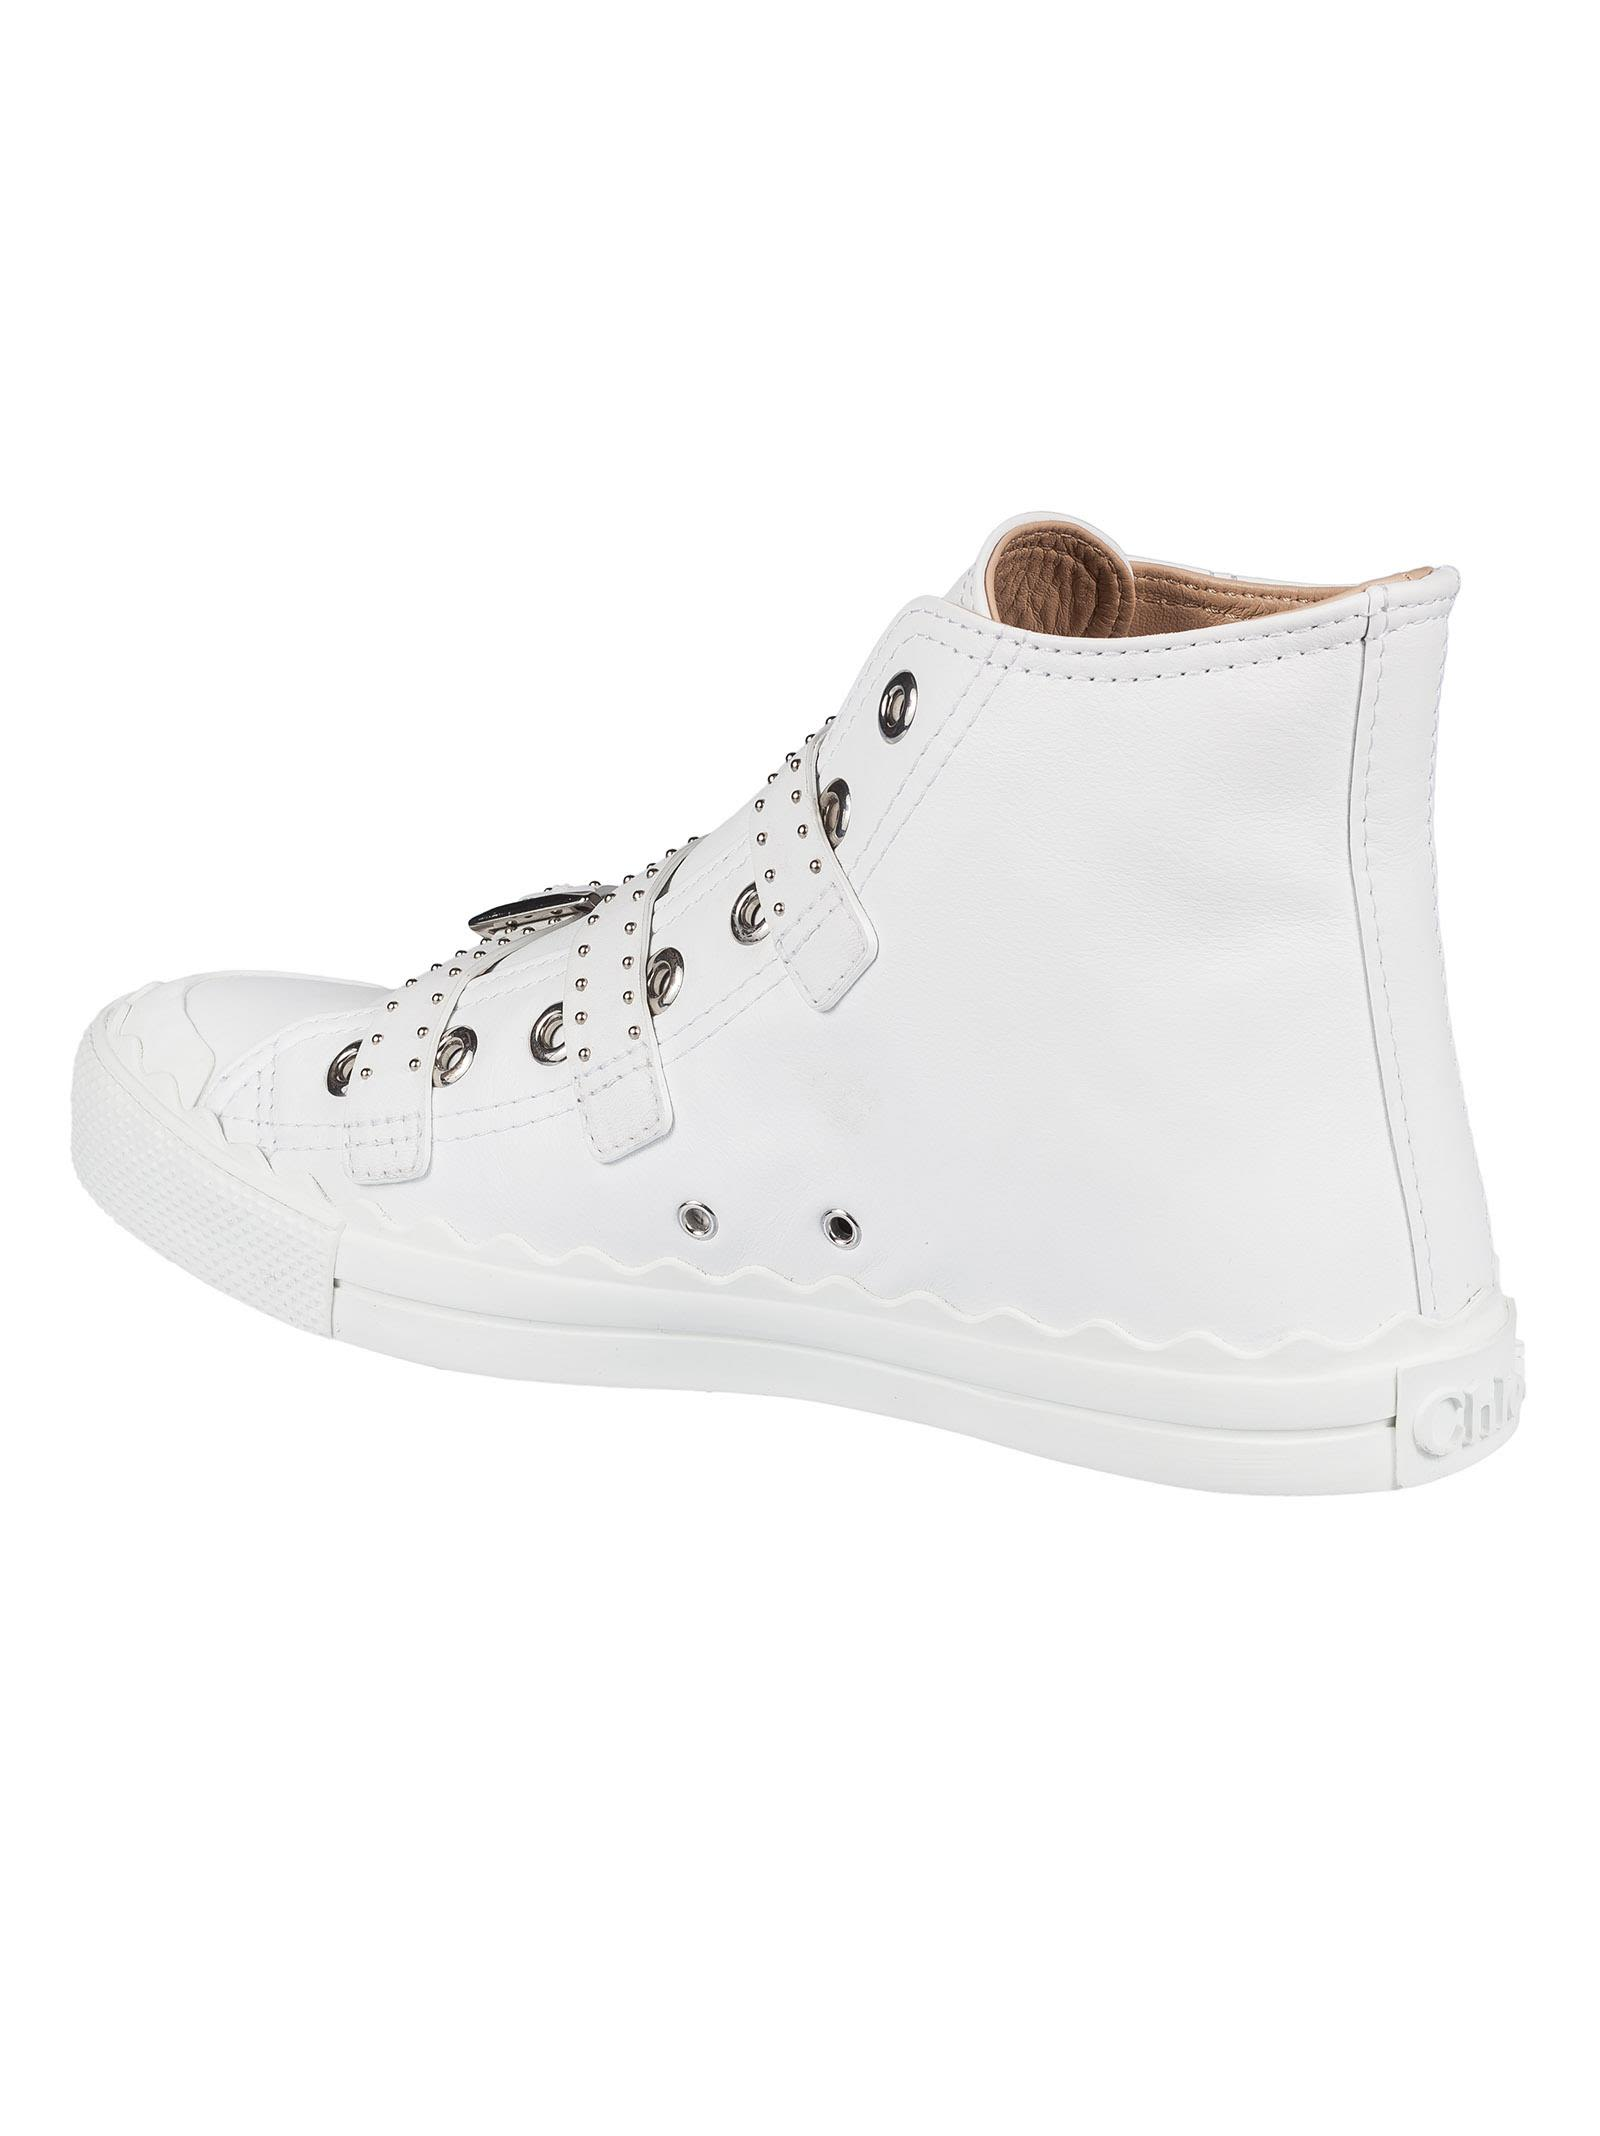 Chloé Chlo Kyle Hi-top Sneakers Best Store To Get Cheap Price Outlet Clearance Store Quality Free Shipping For Sale For Nice Sale Online ziNkffQbC